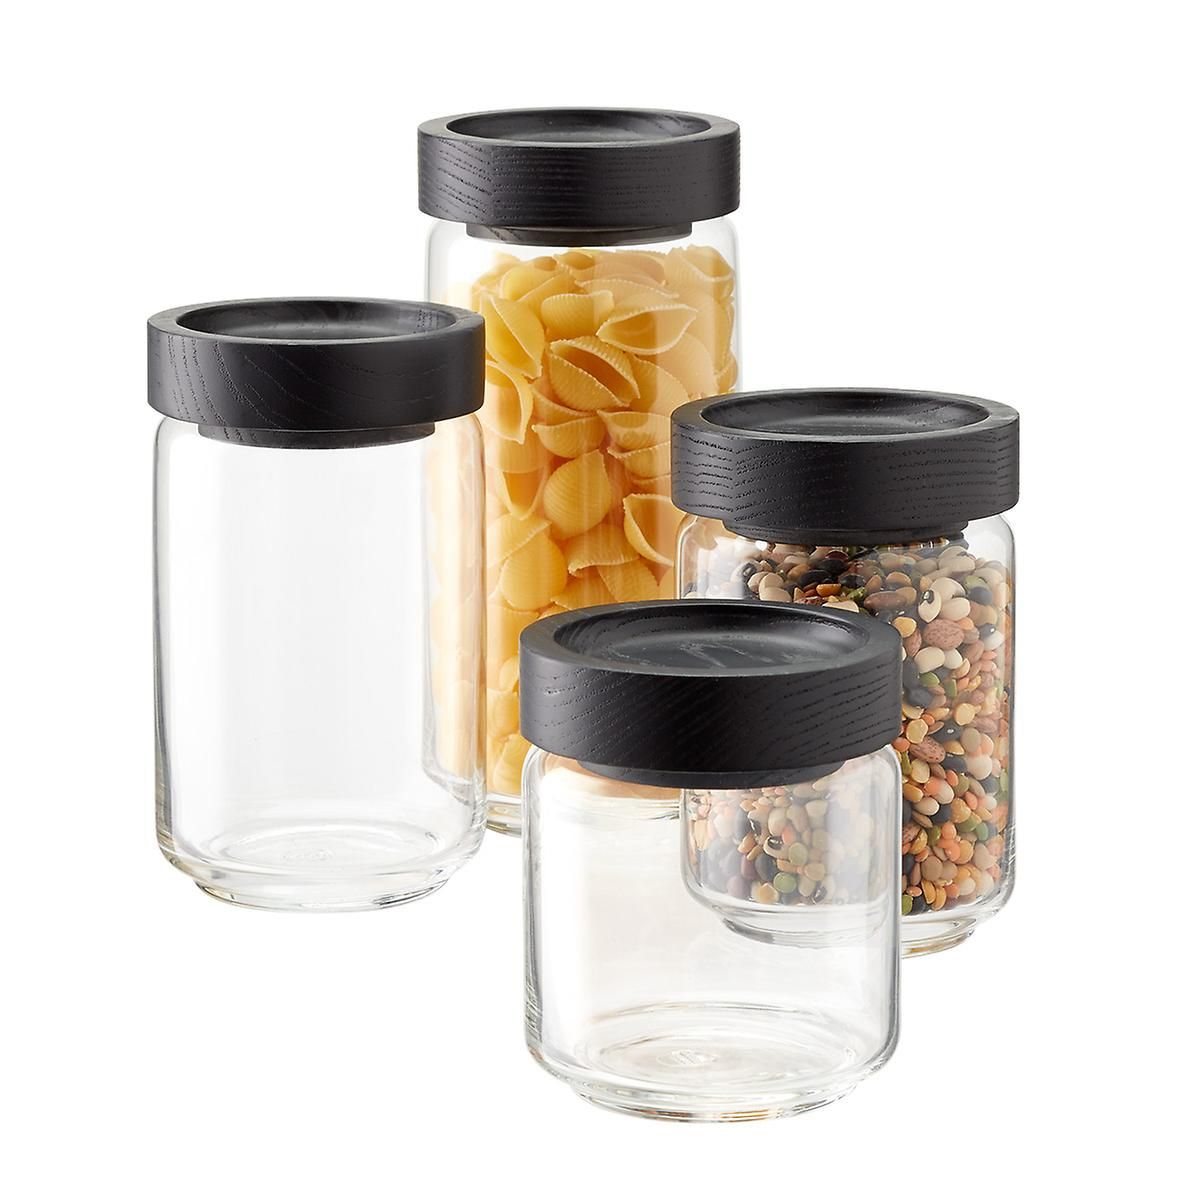 0e3e71c9bde8 Artisan Glass Canisters with Black Lids in 2019 | eco products ...